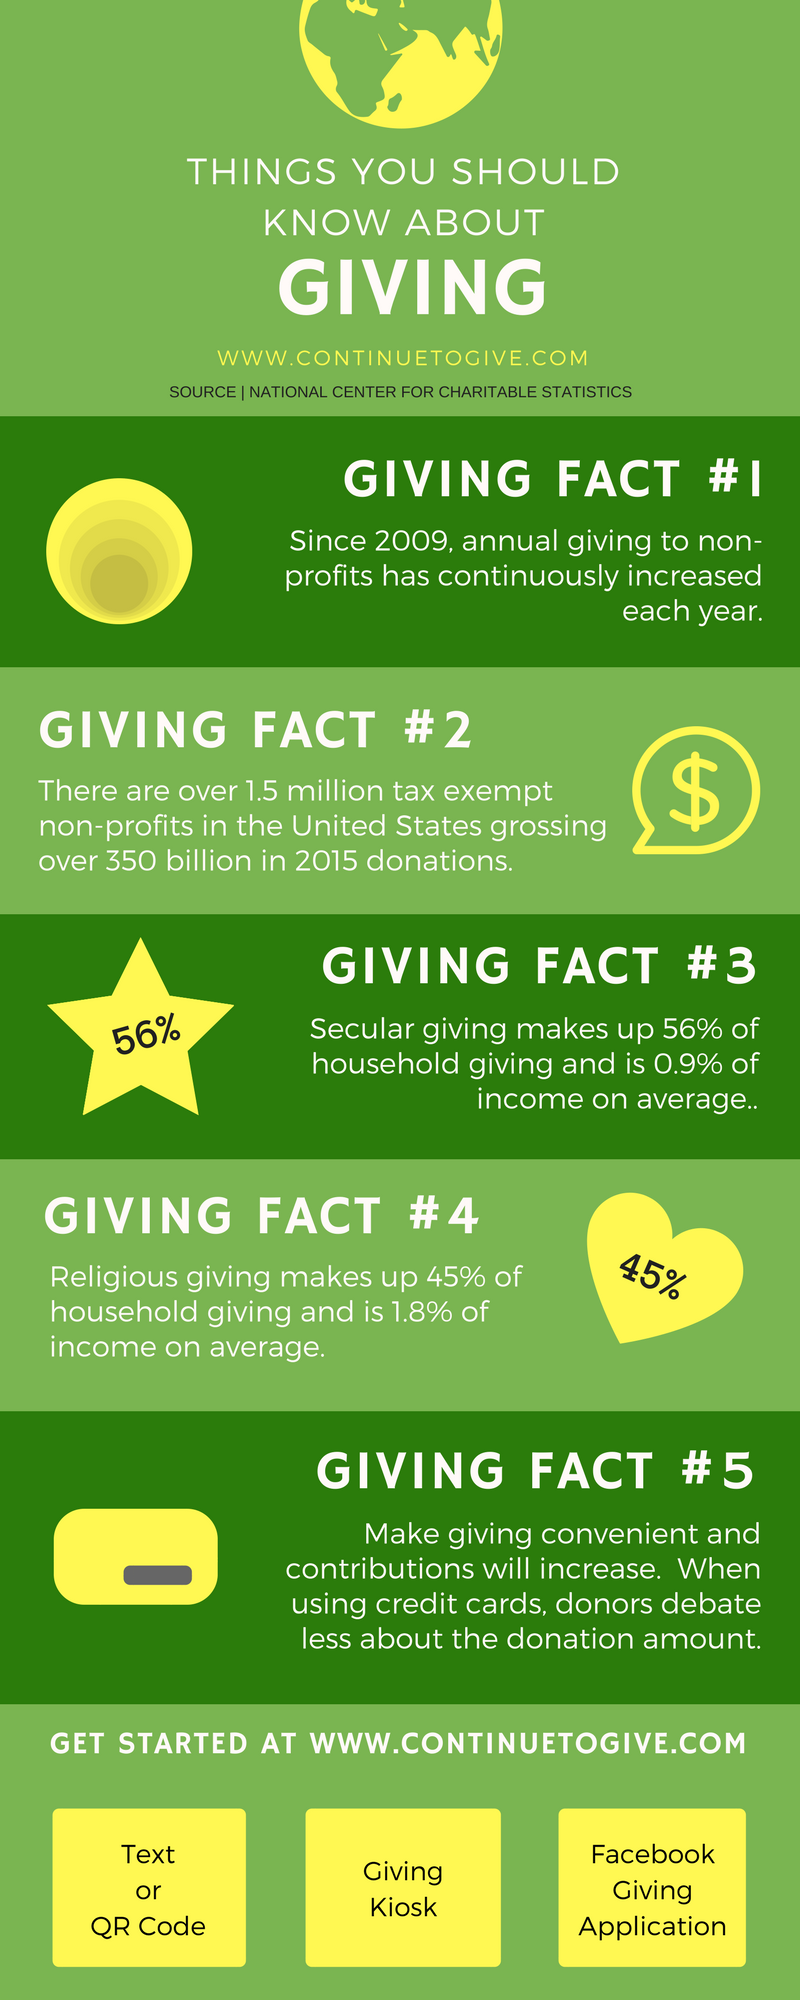 things-you-should-know-about-giving